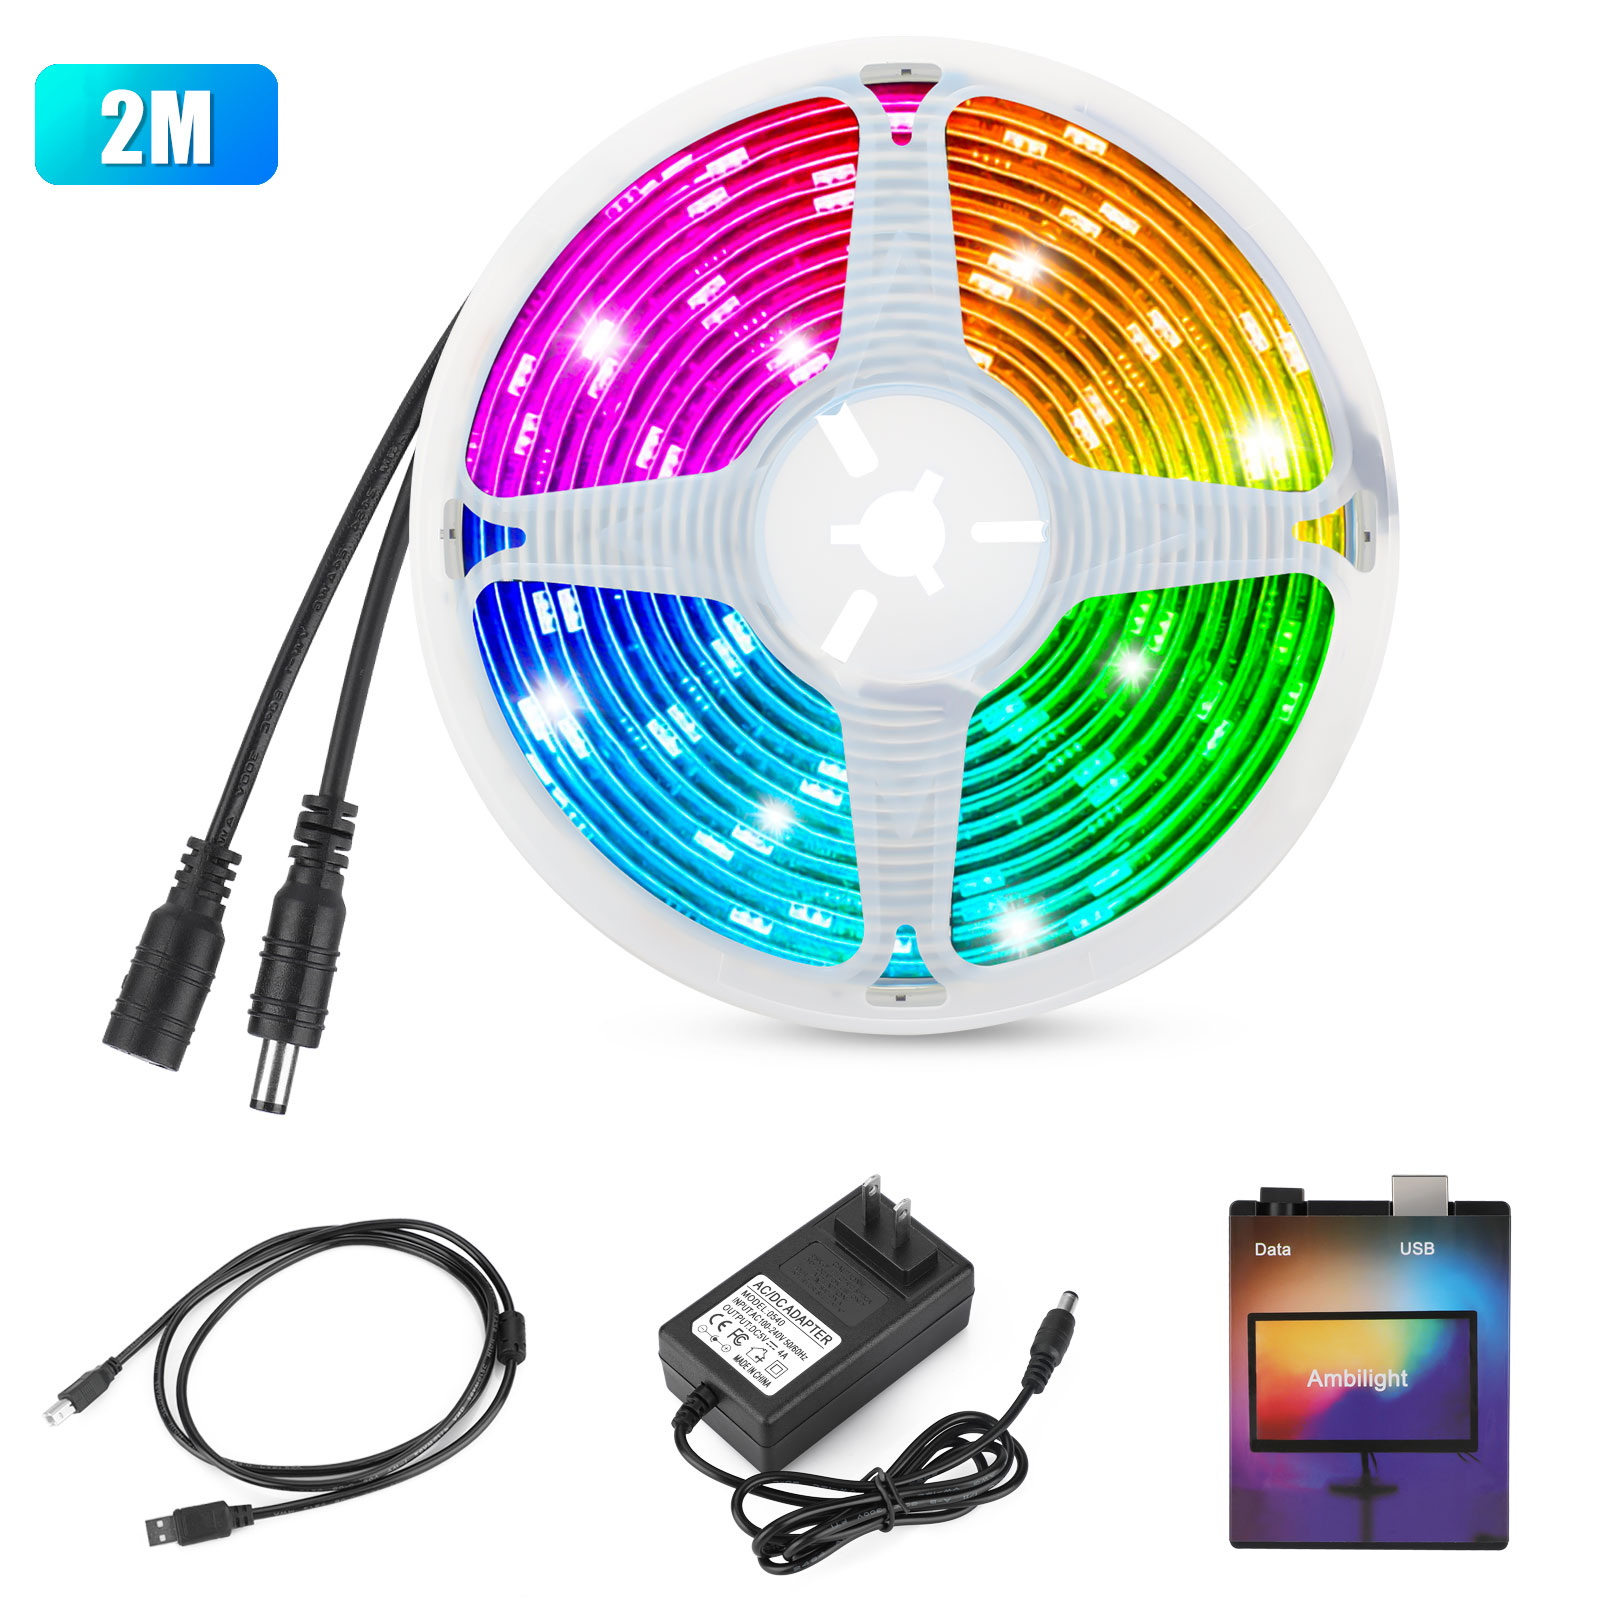 Dimmable-TV-USB-WS2812B-LED-Strip-Tape-Computer-PC-Dream-Screen-Backlight-DIY-US thumbnail 14